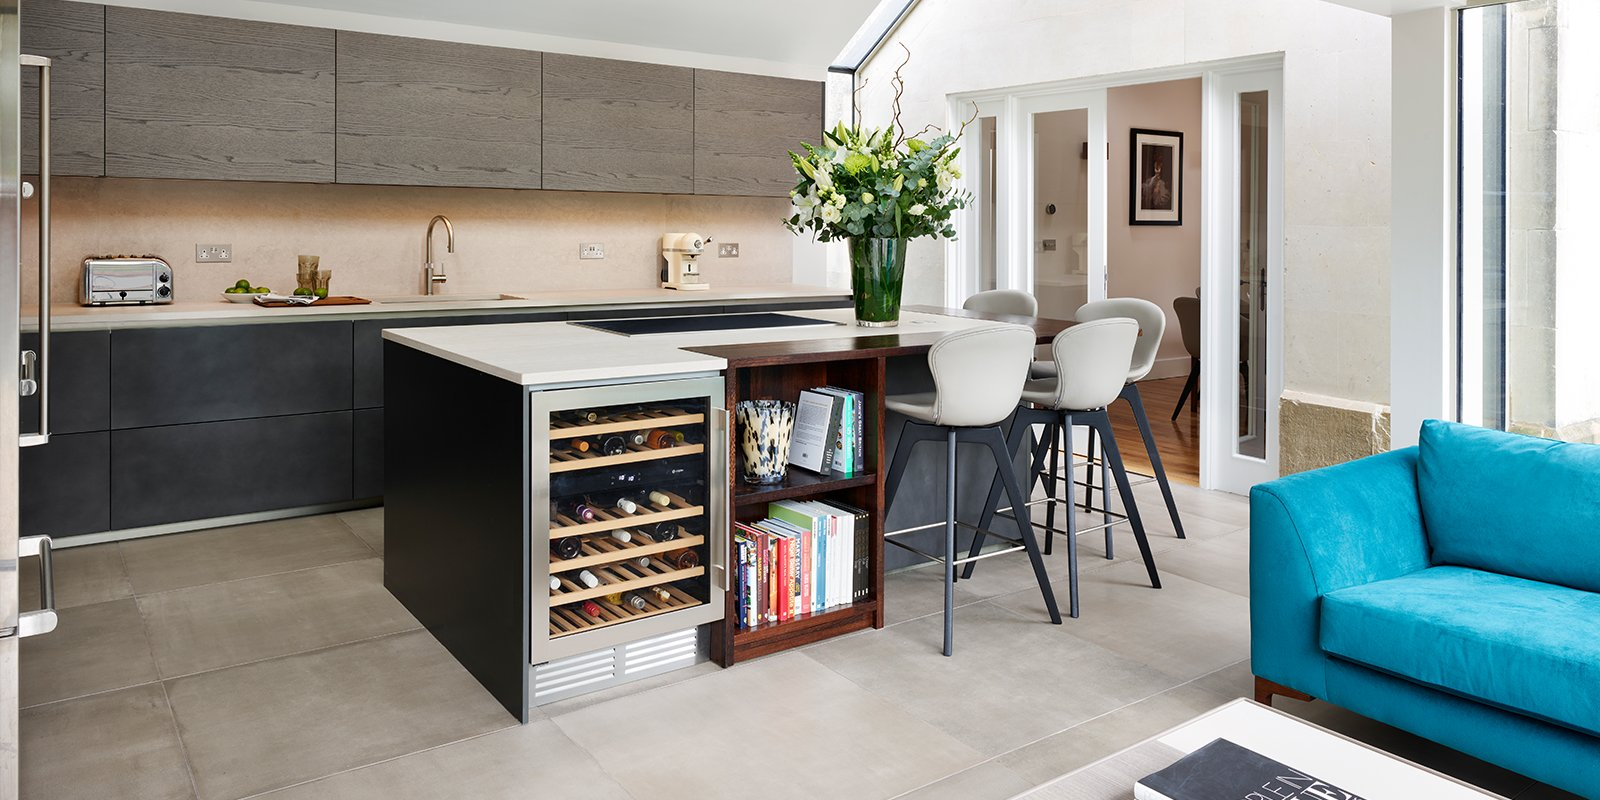 dada kitchens produced in italy